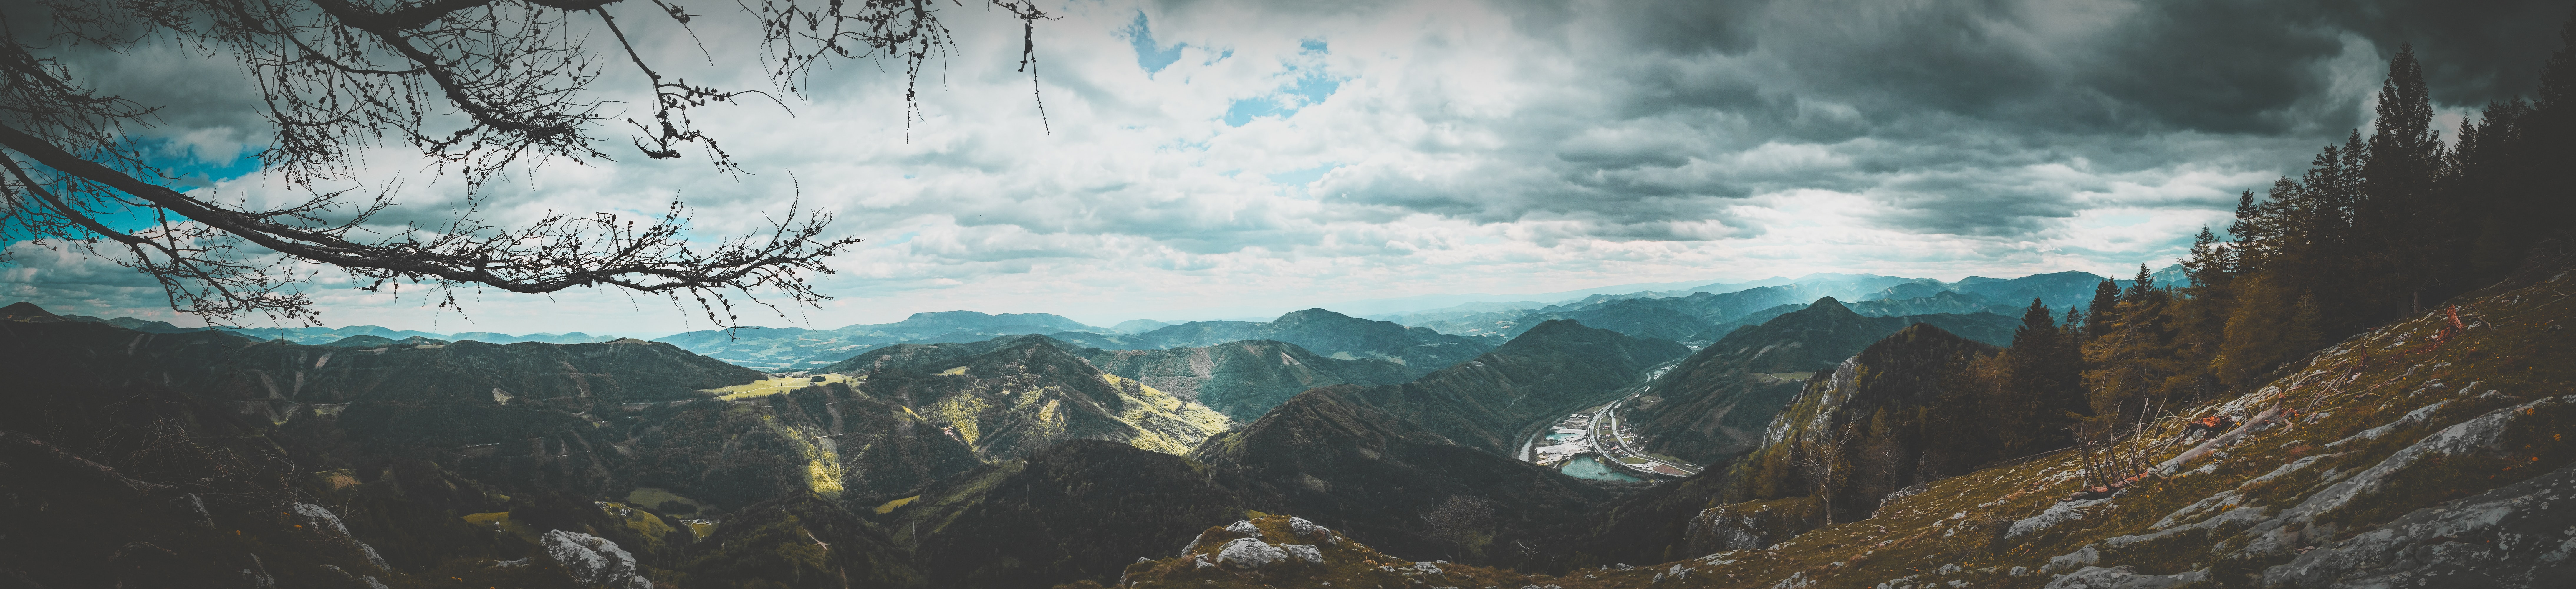 panoramic photography of overlooking mountain